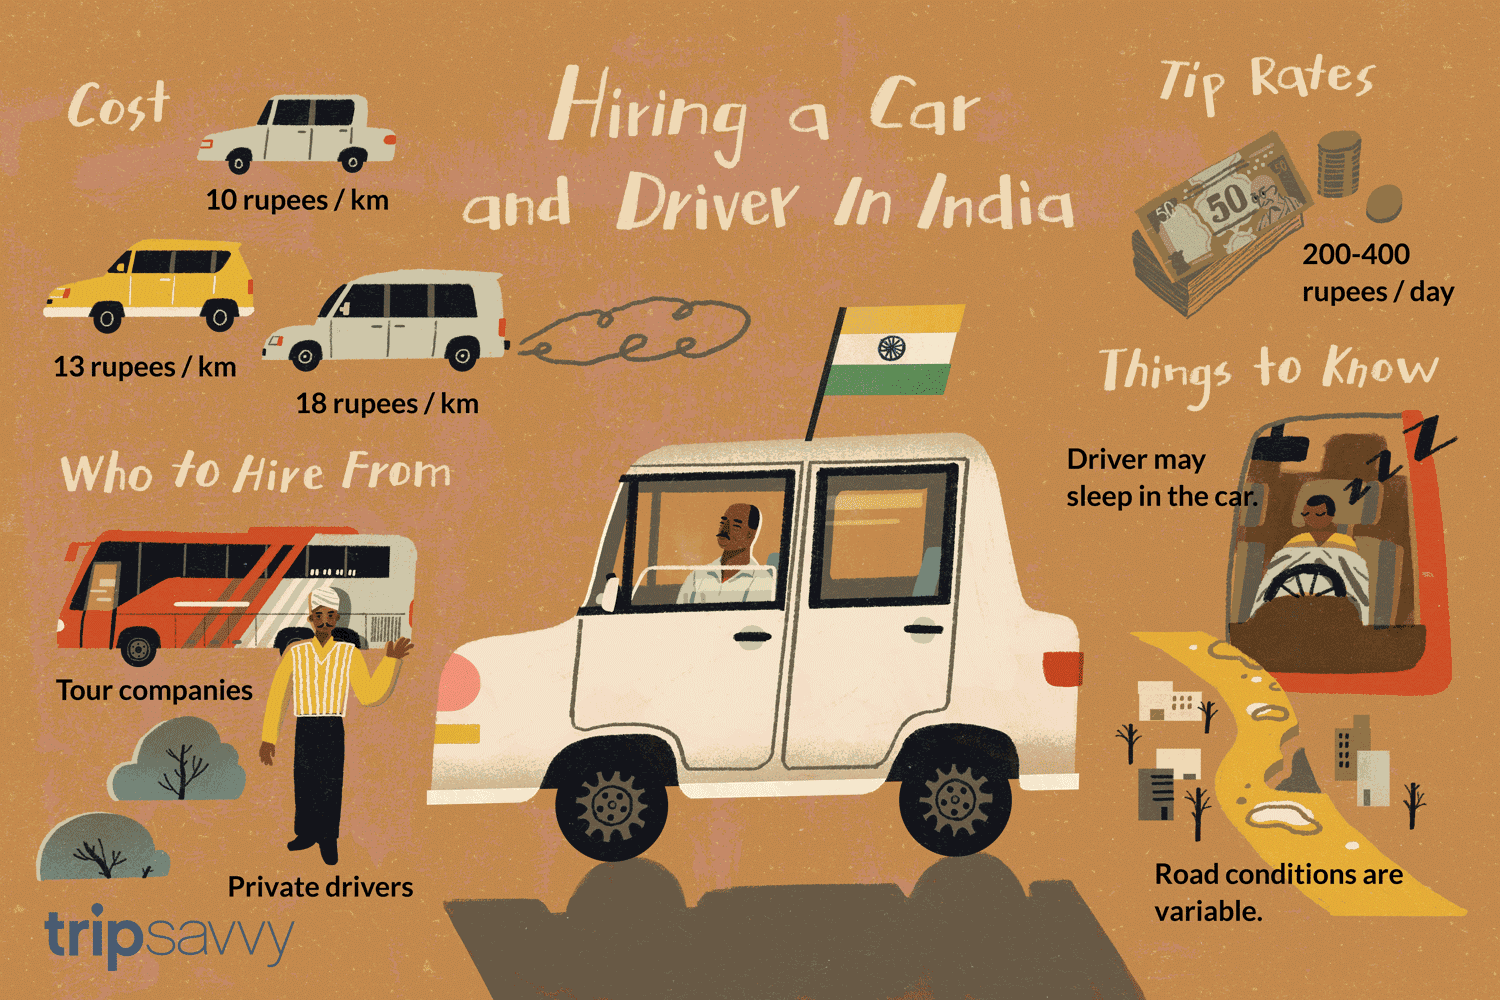 Essential Guide to Hiring a Car and Driver in India